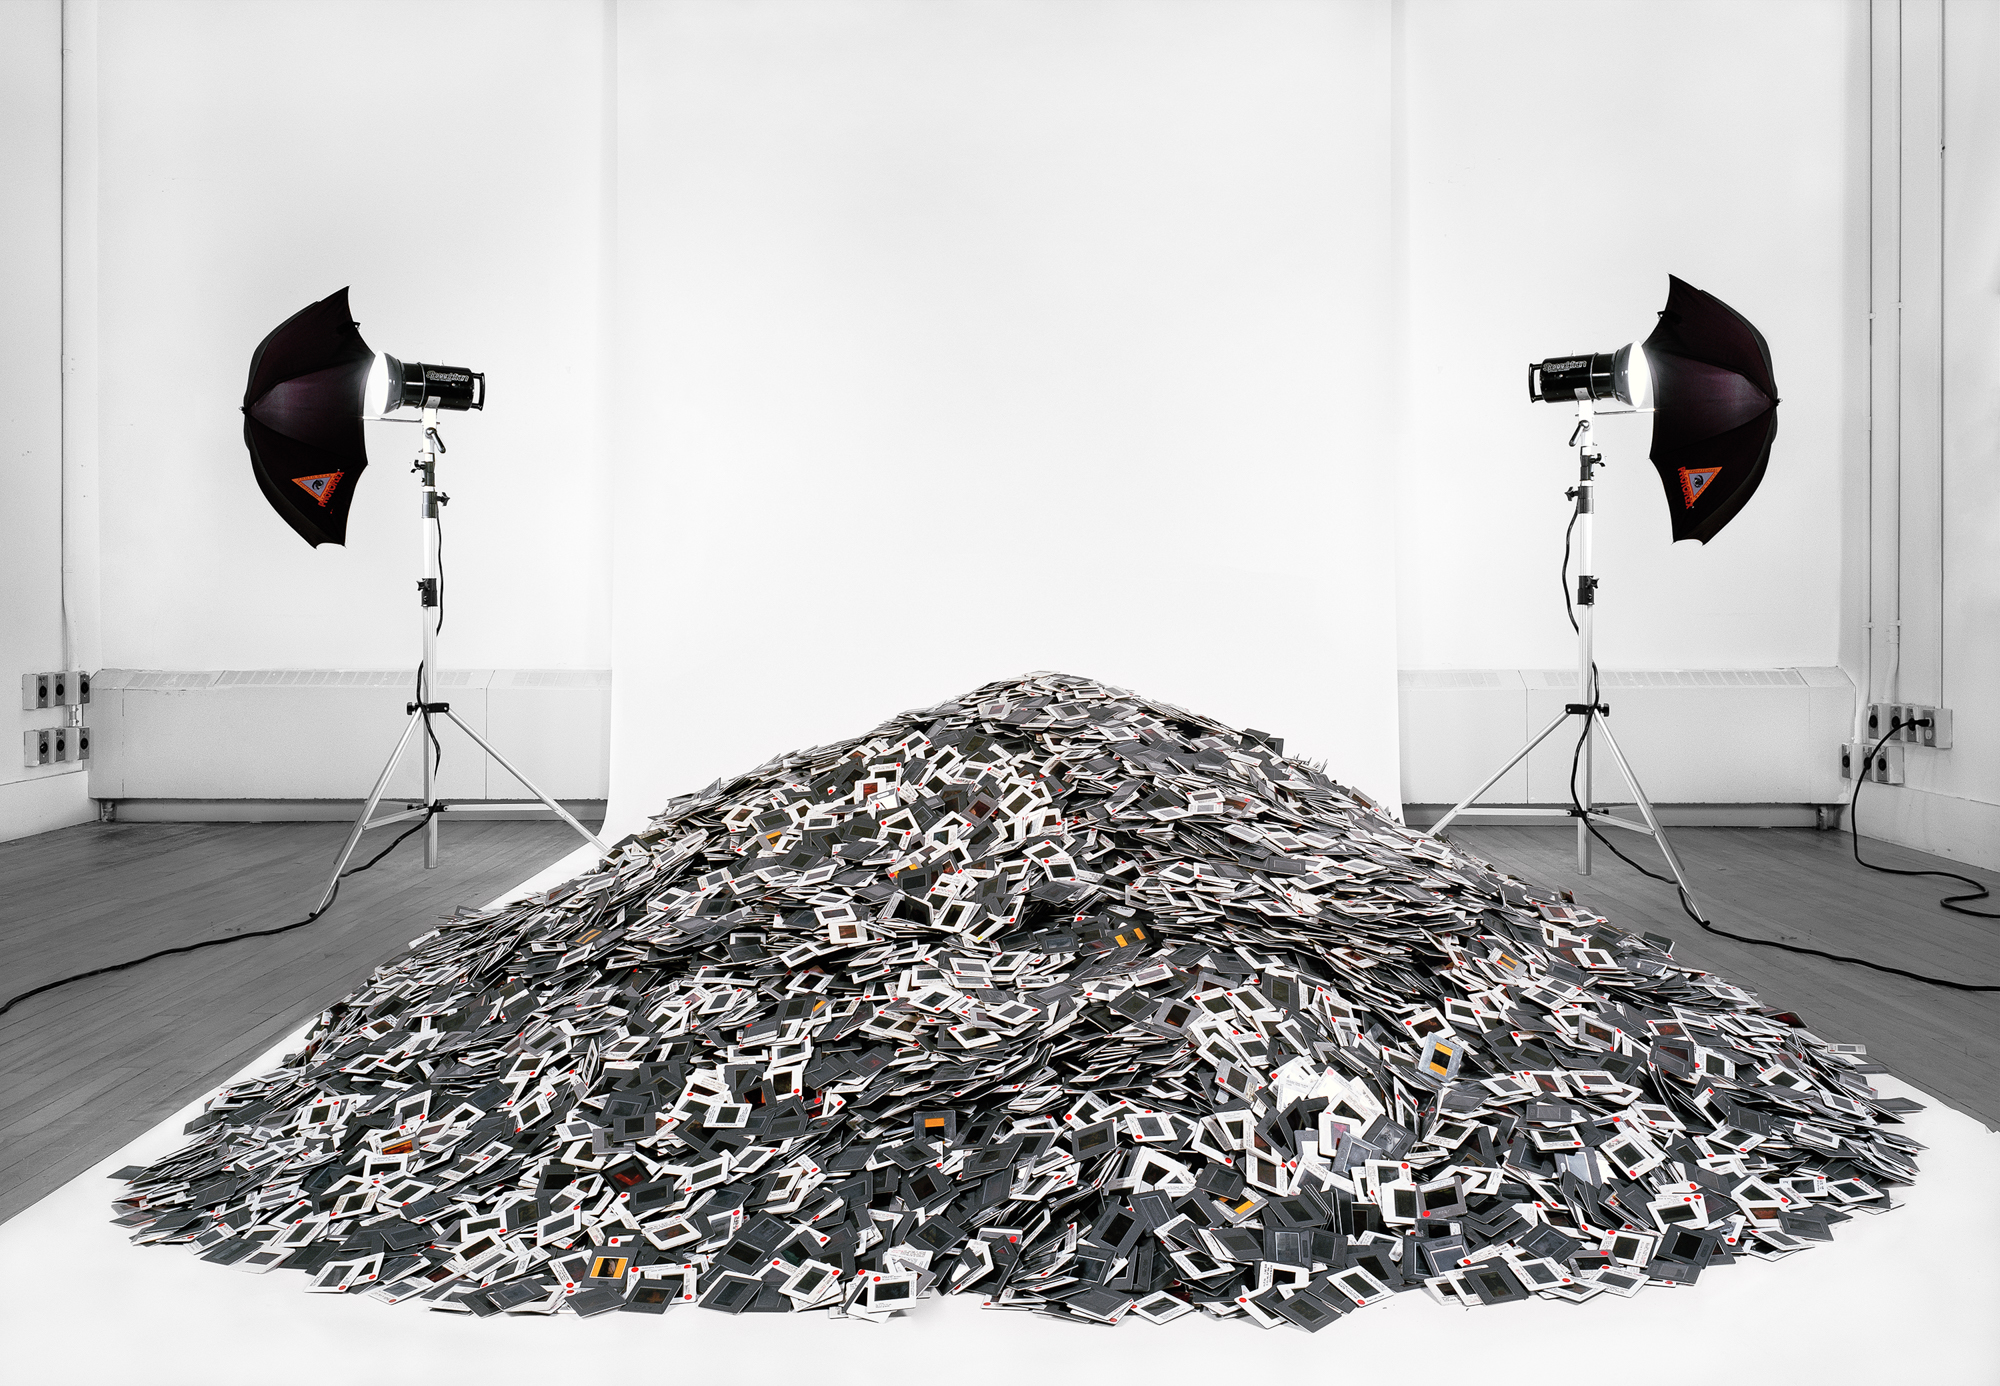 Susan Dobson, Photography After Photography, 2019. Courtesy of the artist and Michael Gibson Gallery